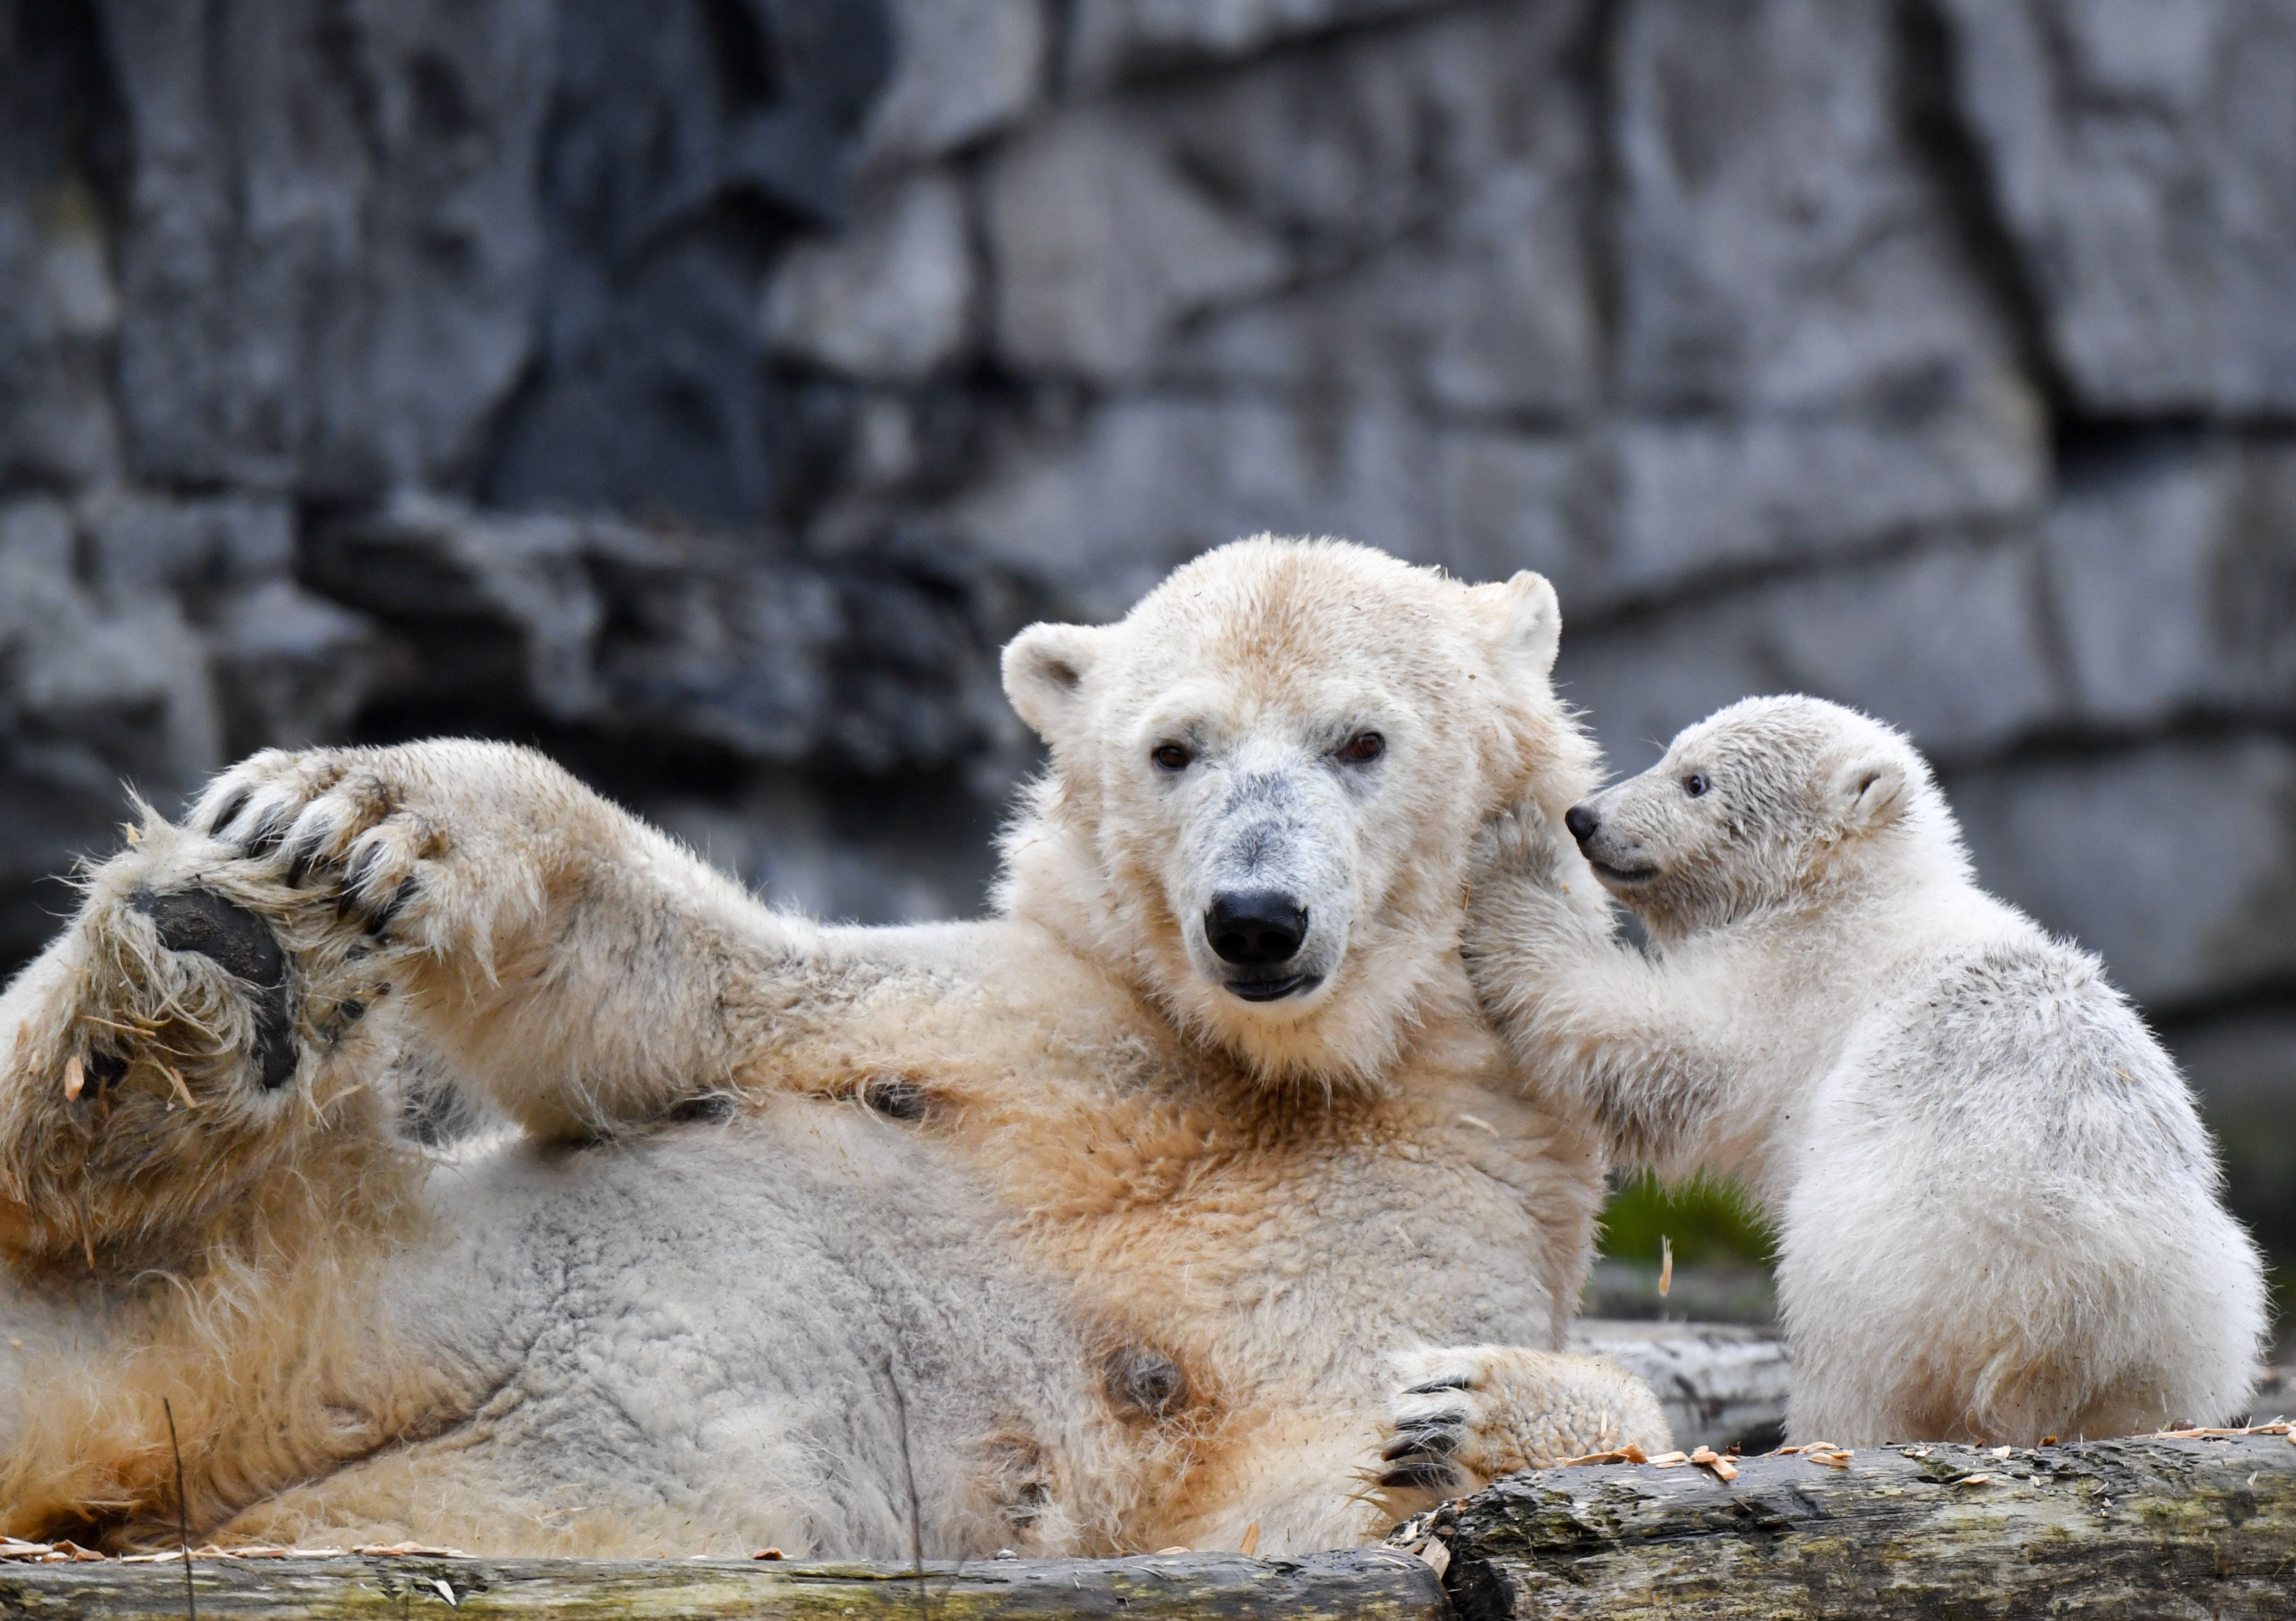 A polar bear cub plays with her mother Tonja at their enclosure on March 18, 2019 at the Tierpark zoo in Berlin. (Photo credit JENS KALAENE/AFP/Getty Images)